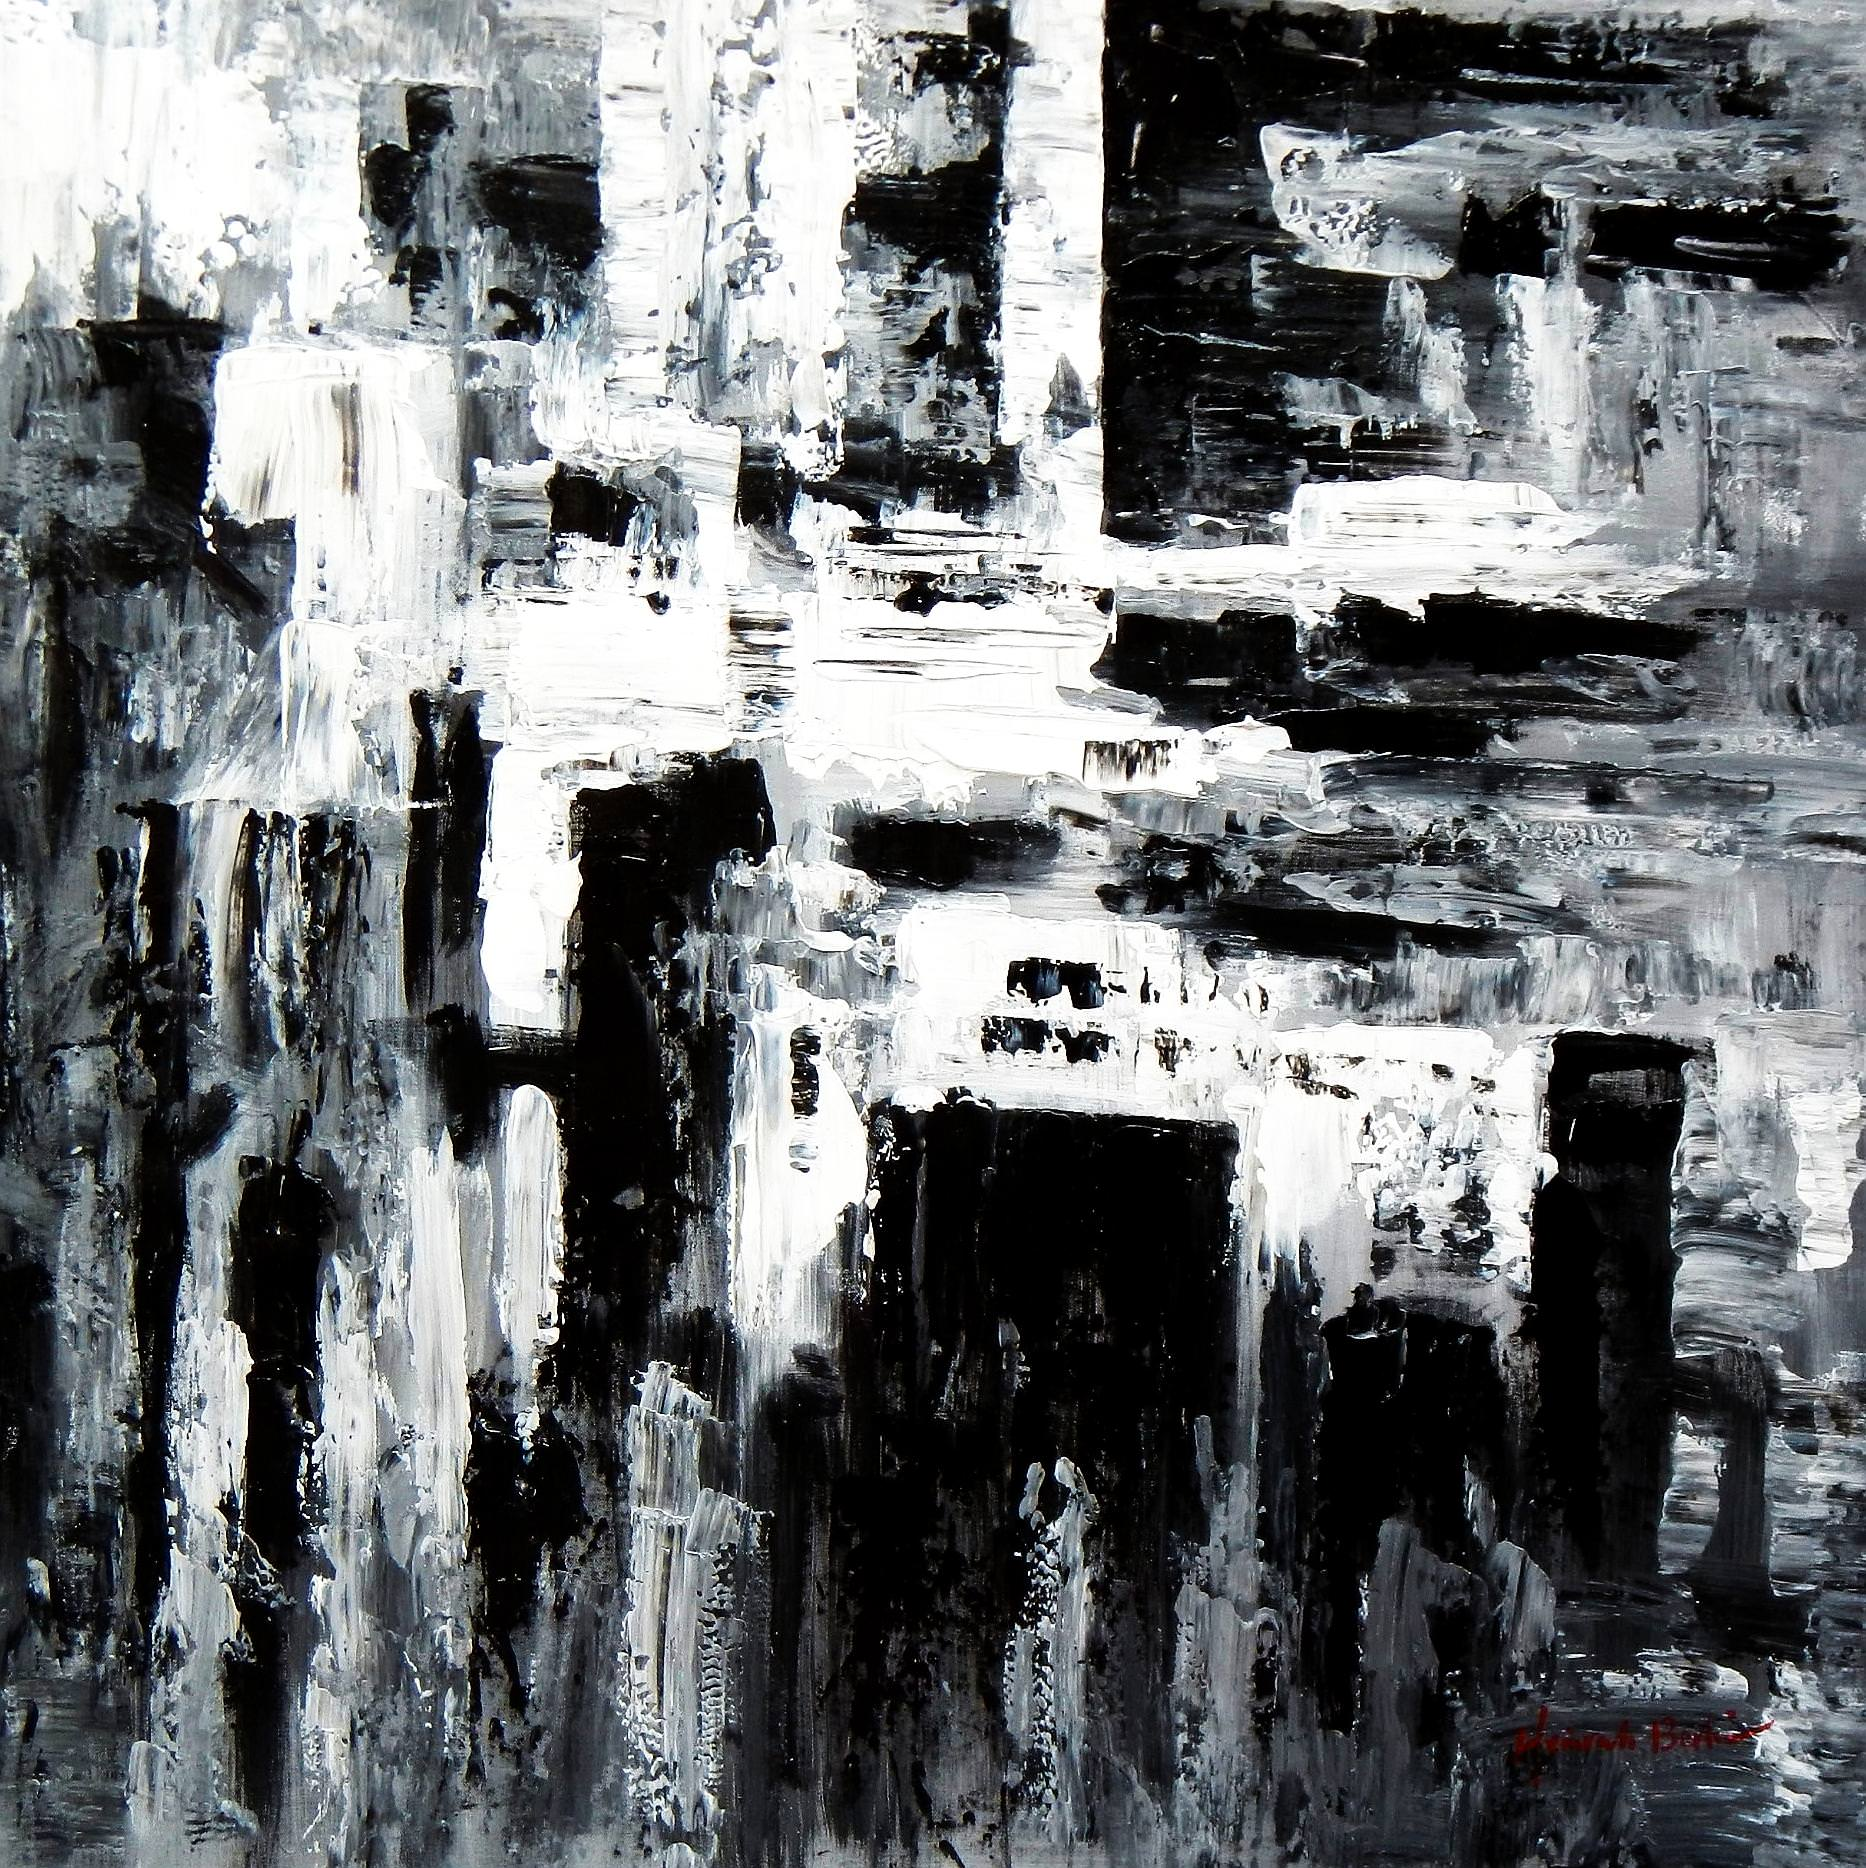 Abstrakt - Nacht in New York g92949 80x80cm Ölgemälde handgemalt